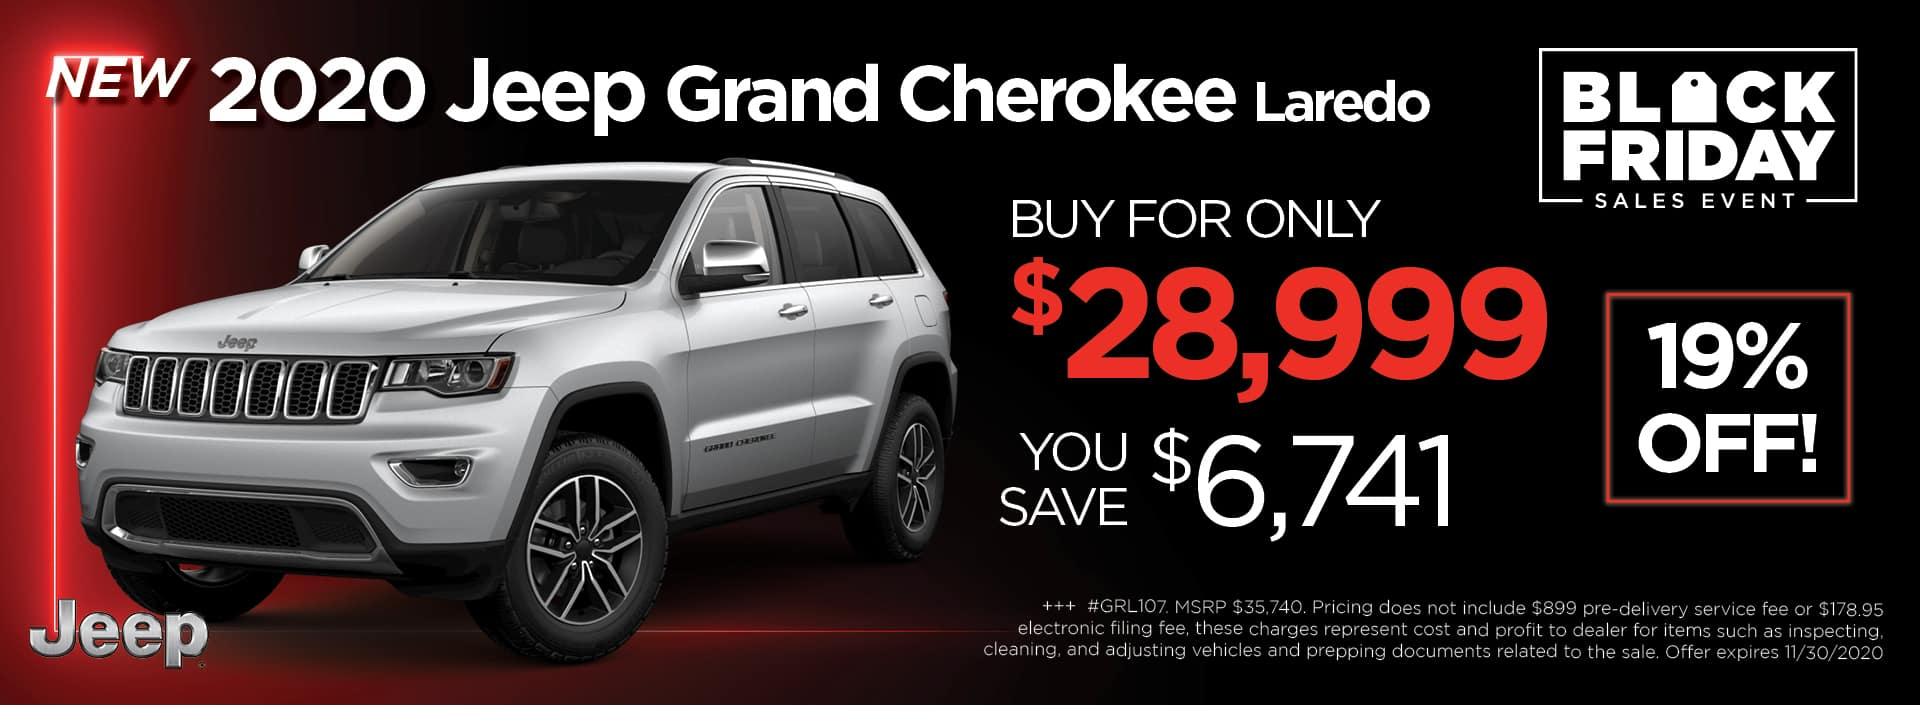 Jeep Grand Cherokee BlackFriday